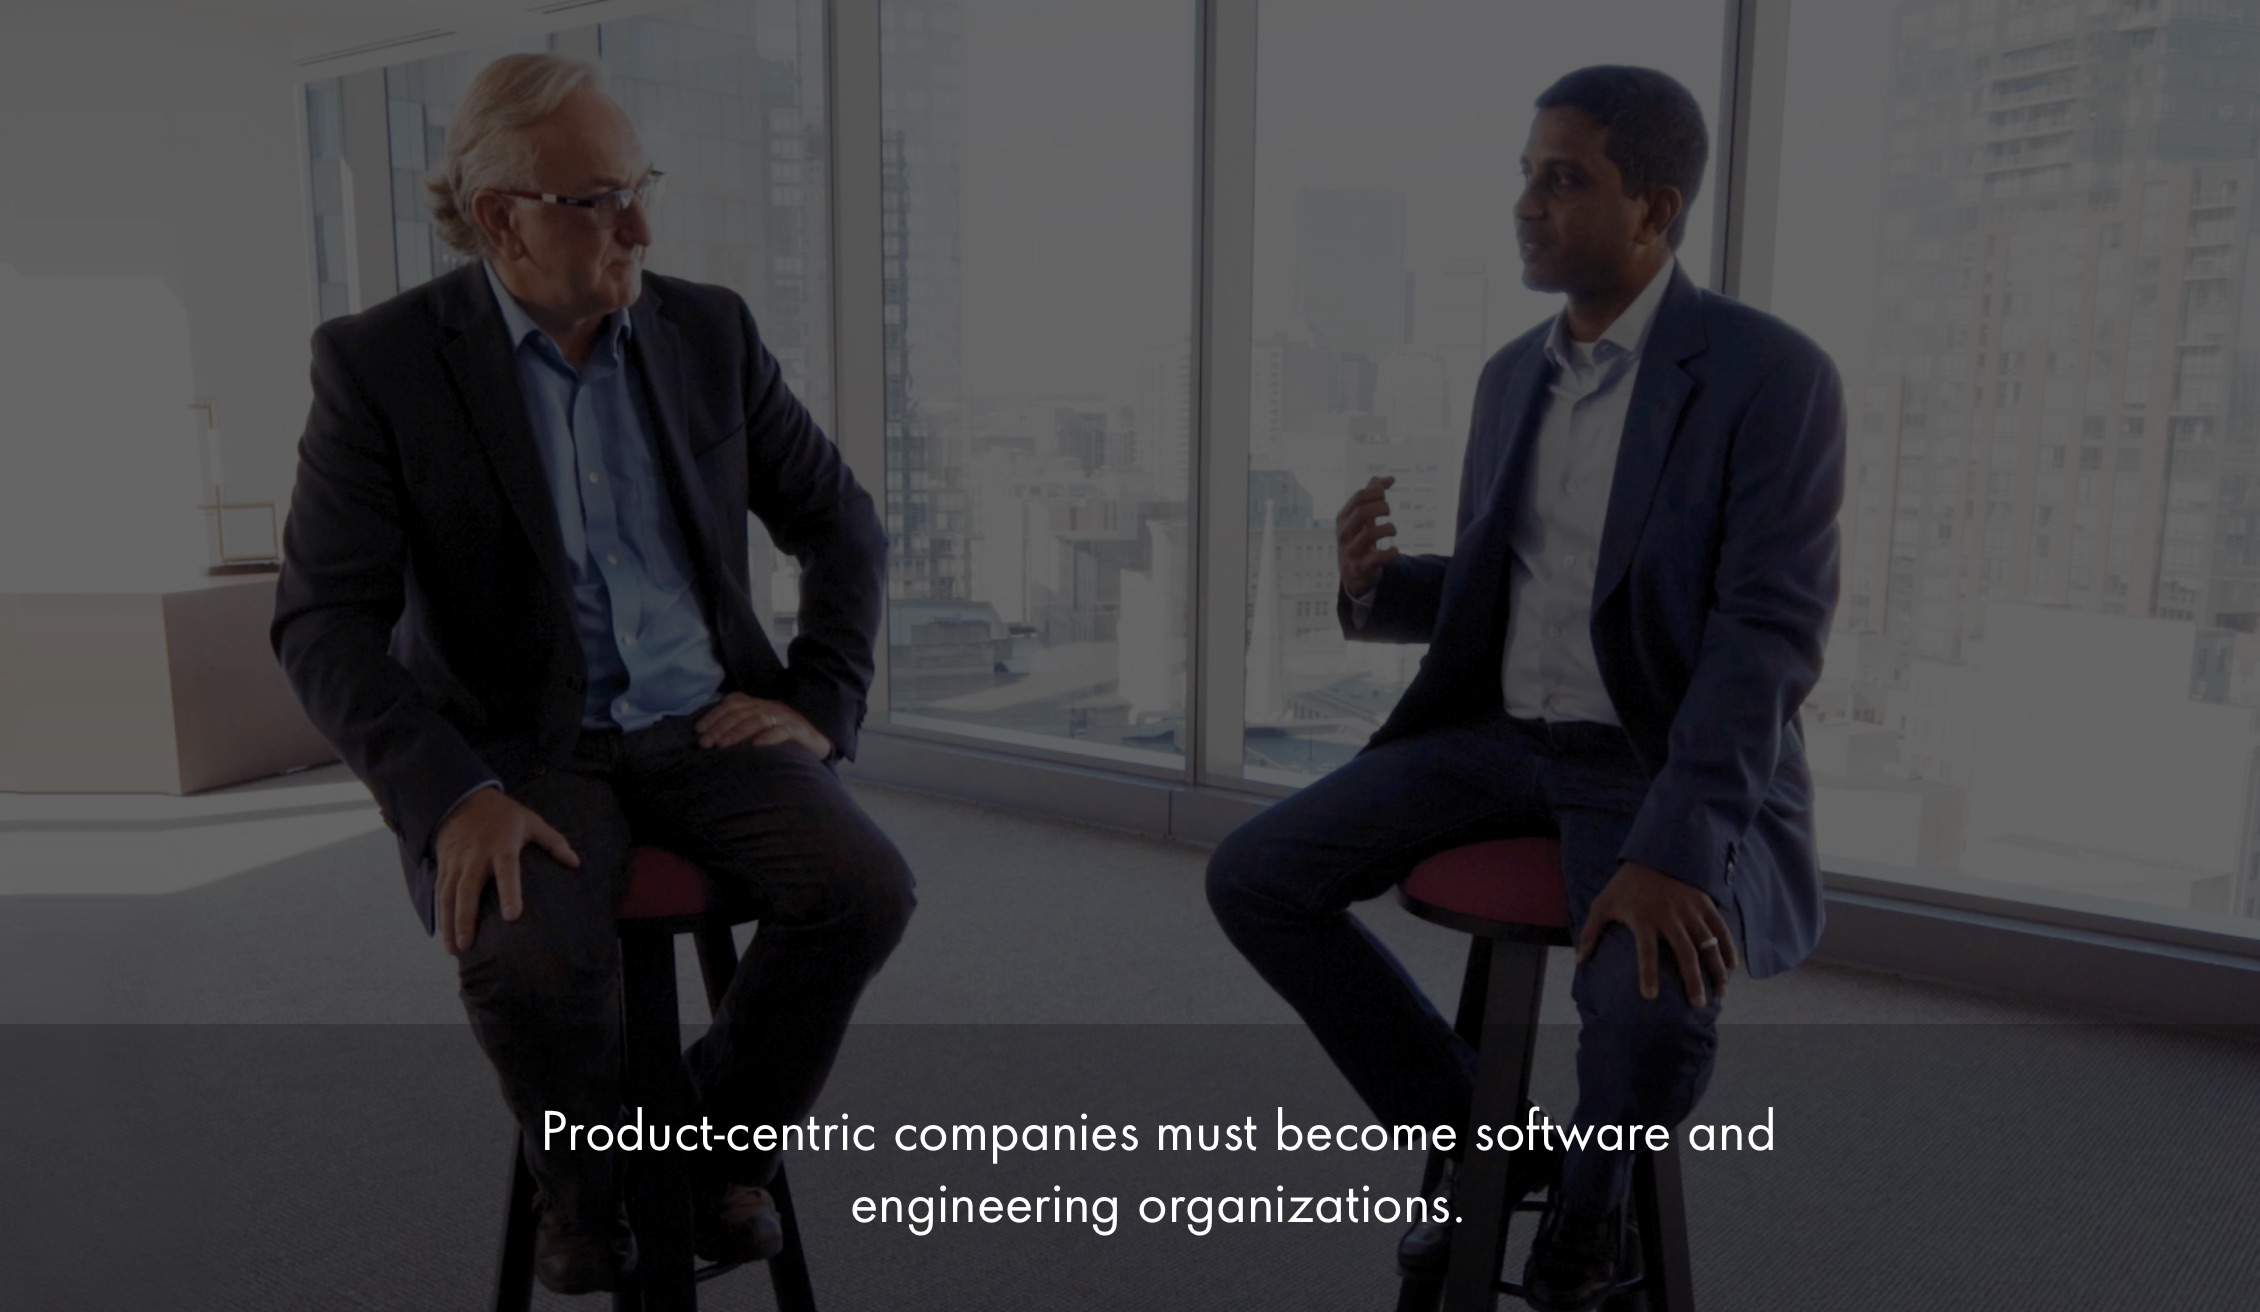 Product-centric companies must become software and engineering organizations.